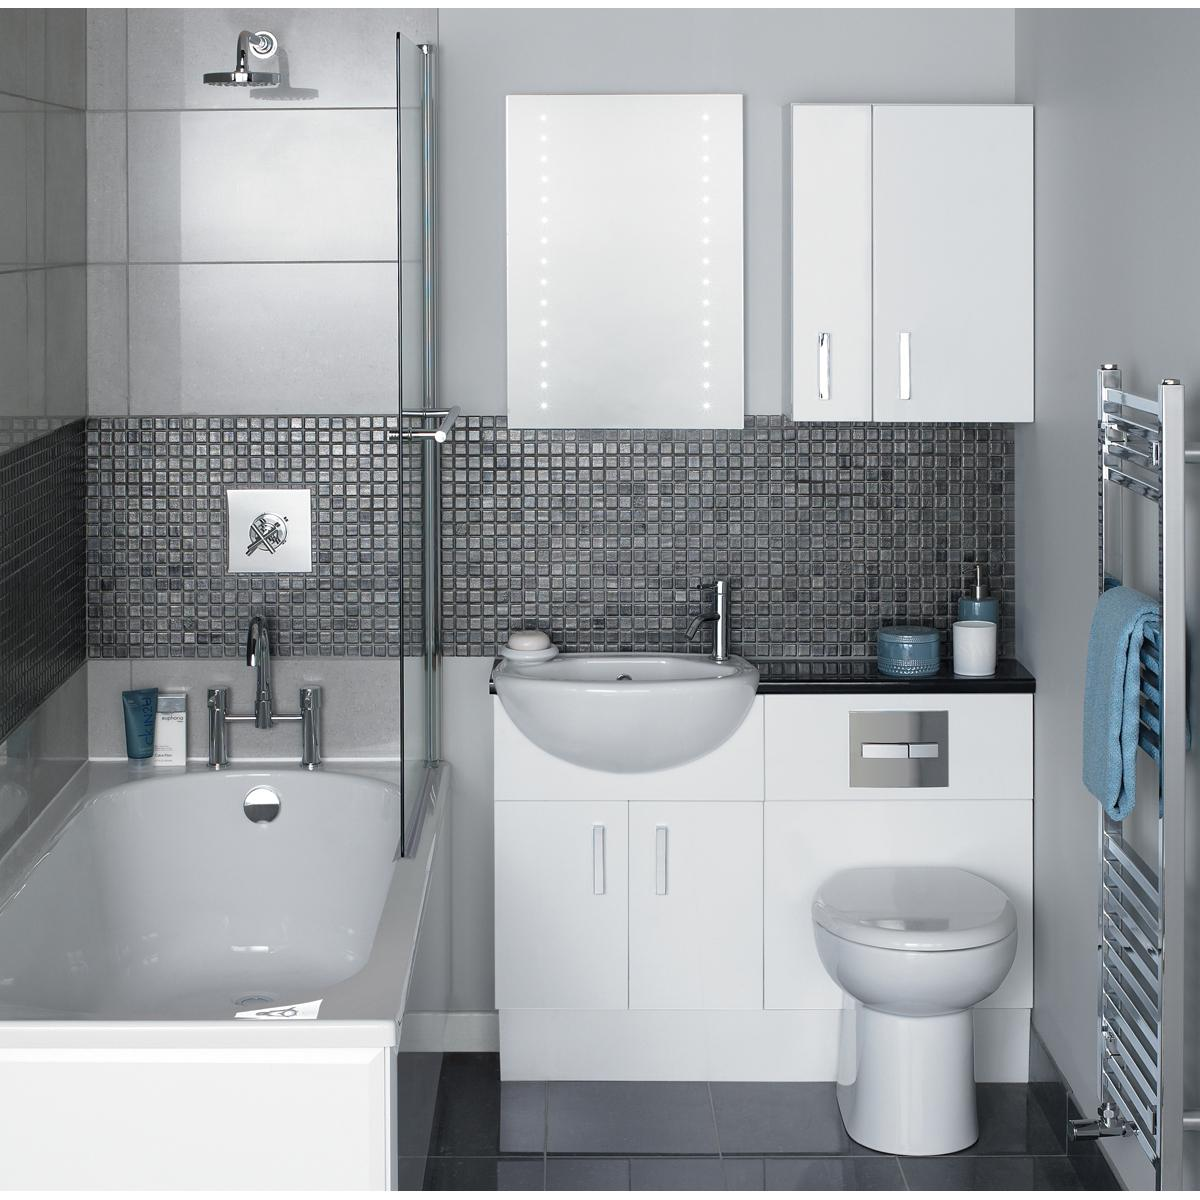 30 Small And Functional Bathroom Design Ideas Small Bathrooms